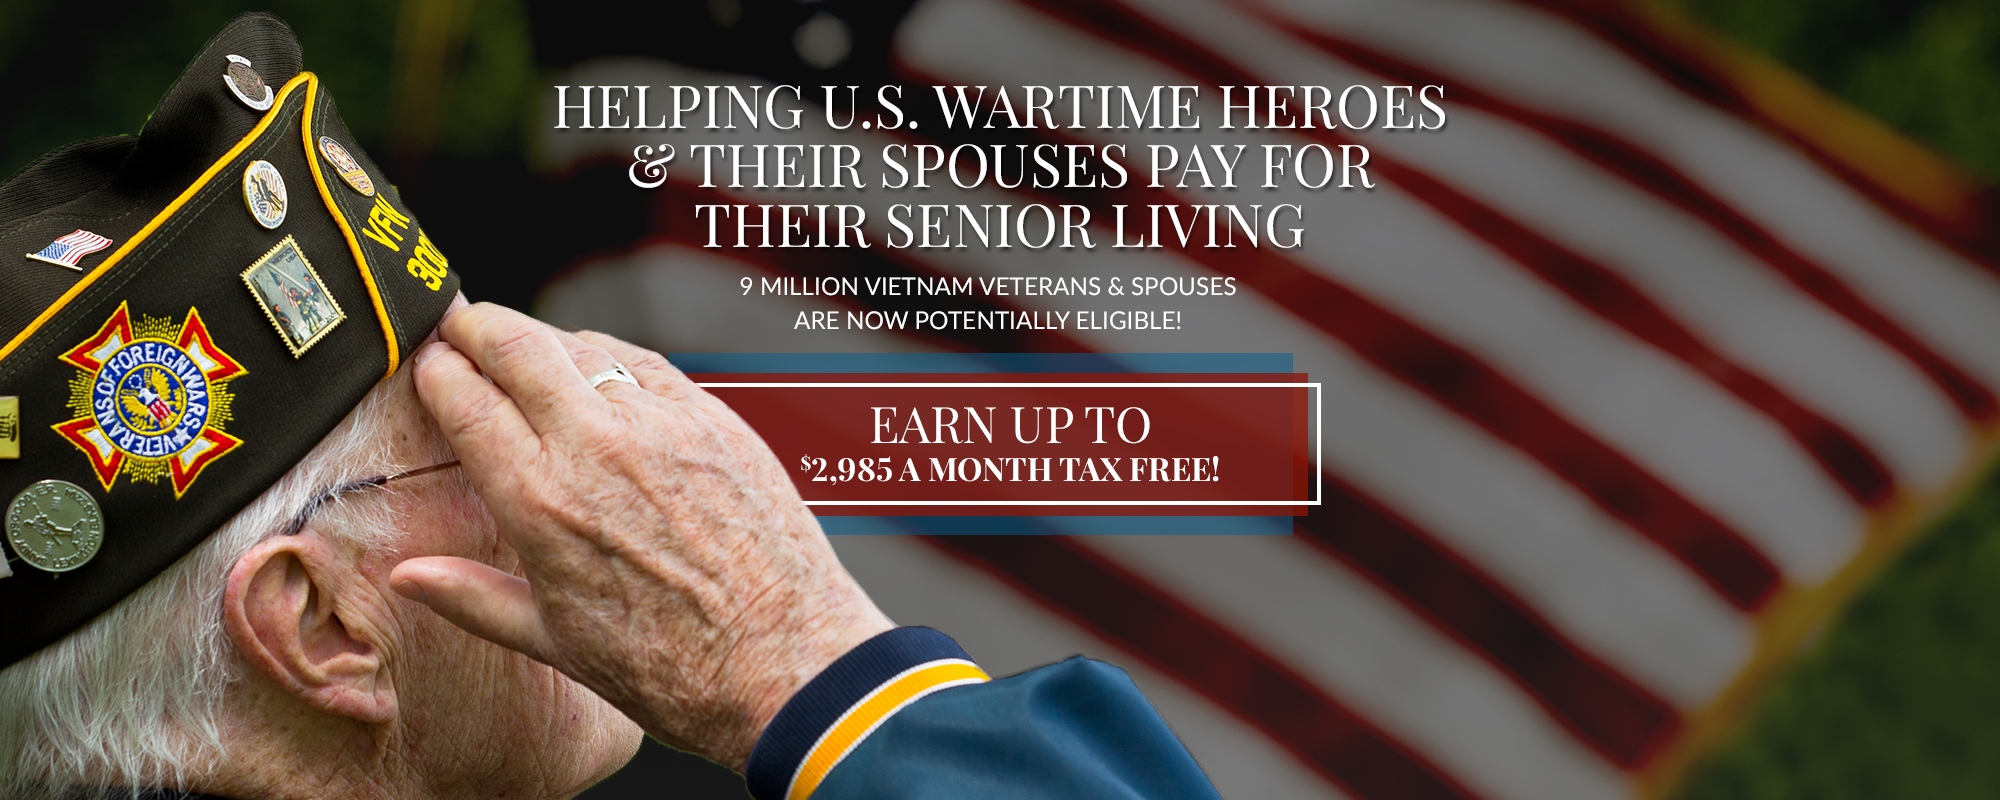 VA Benefits - Get Your Aid And Attendance Pension Today